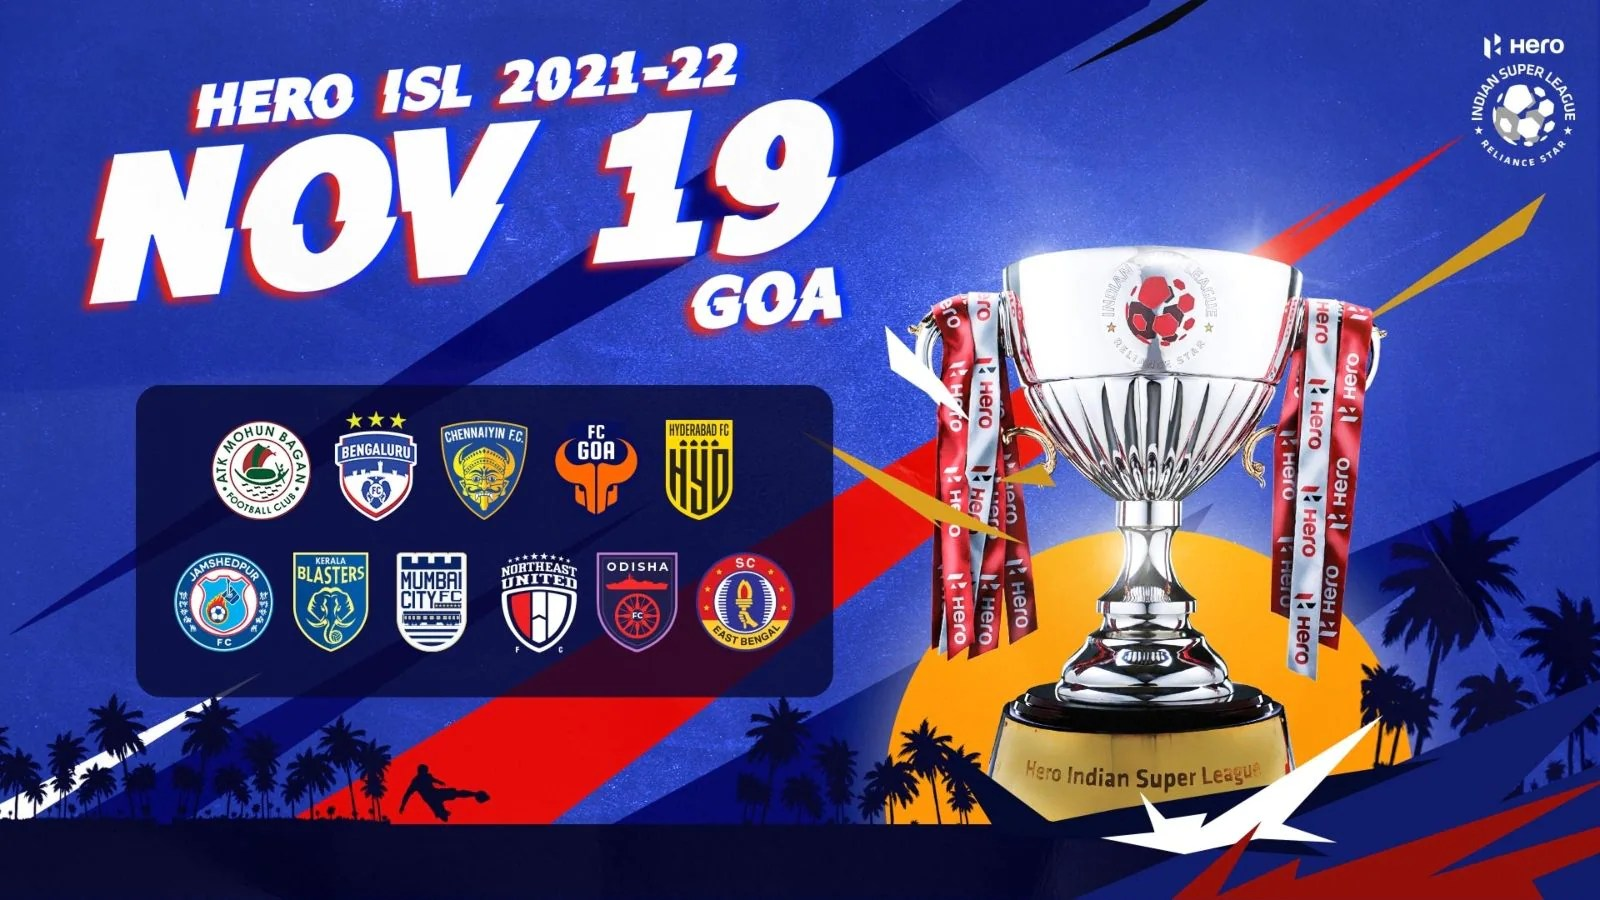 ISL 2021-22 Fixtures Out: League Begins on Nov 19 with